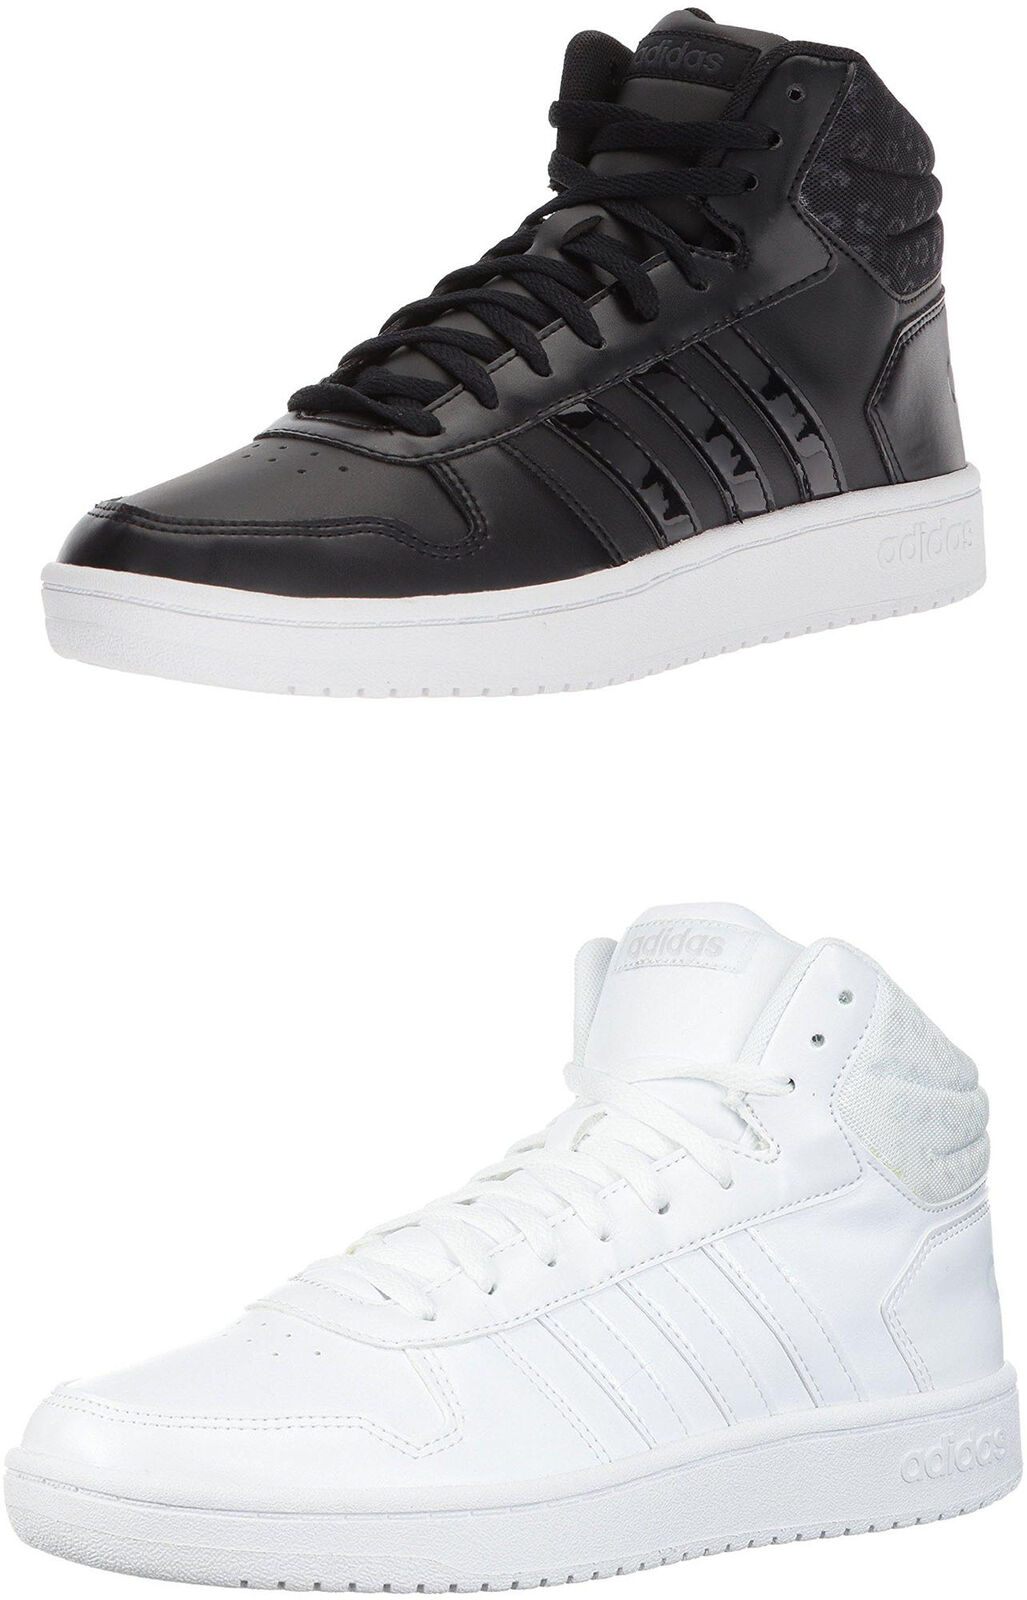 Women's Shoes2 2 Details About 0 Adidas Mid Colors Vs Hoops rdeCoxBW